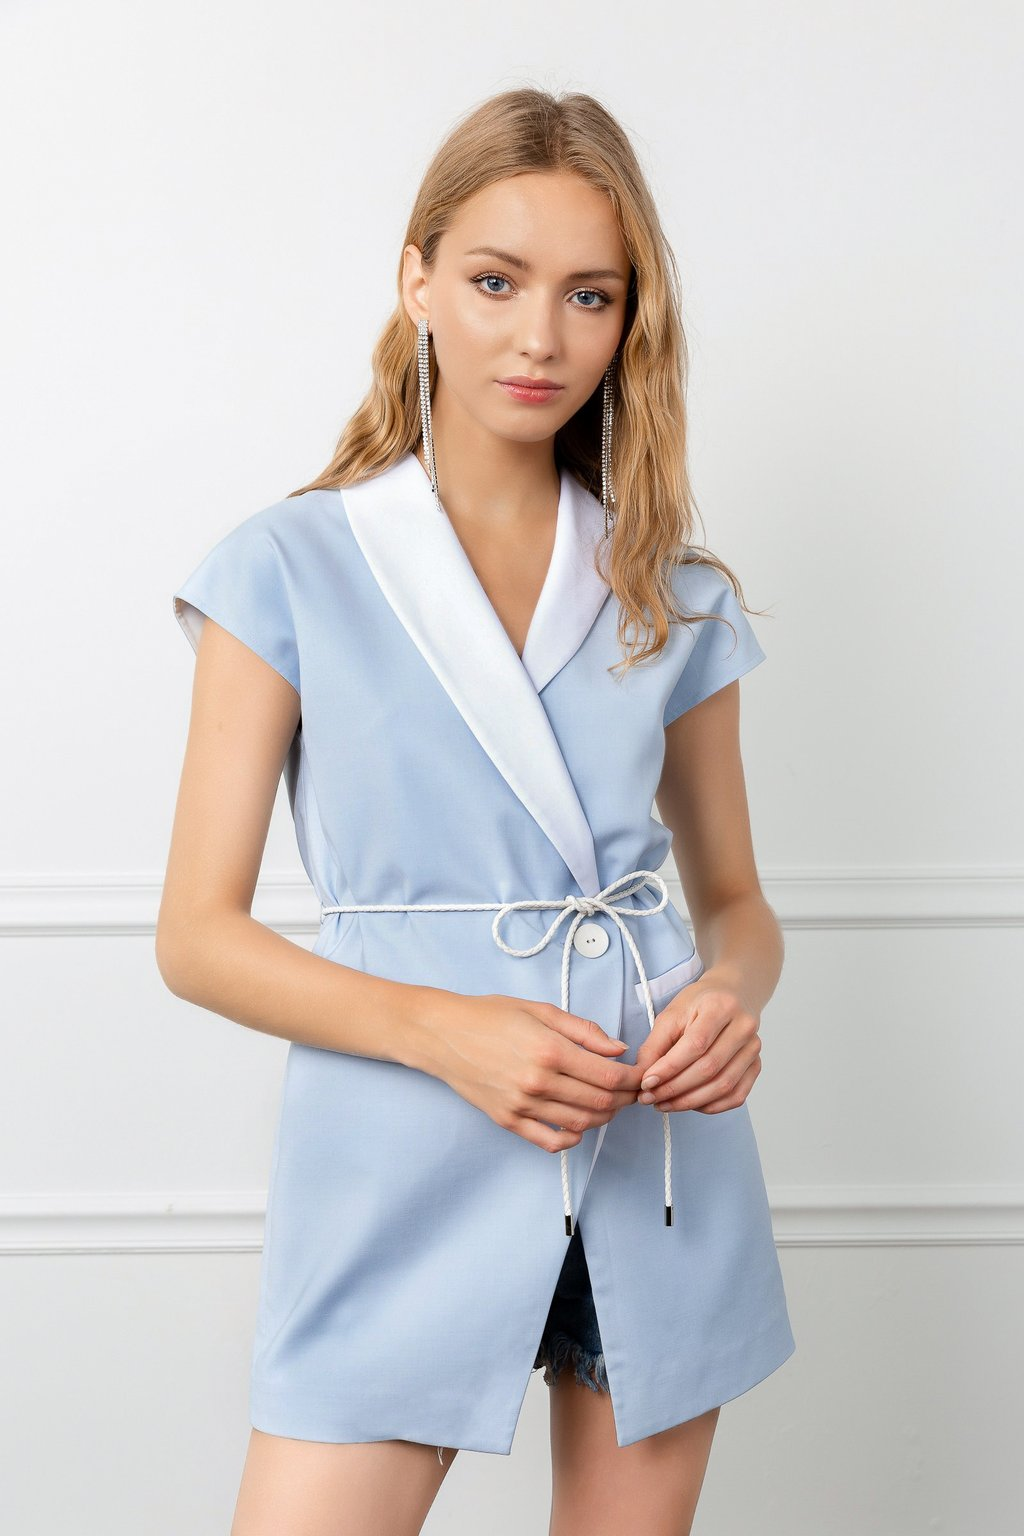 Periwinkle short wrap dress by j.ing women's fashion